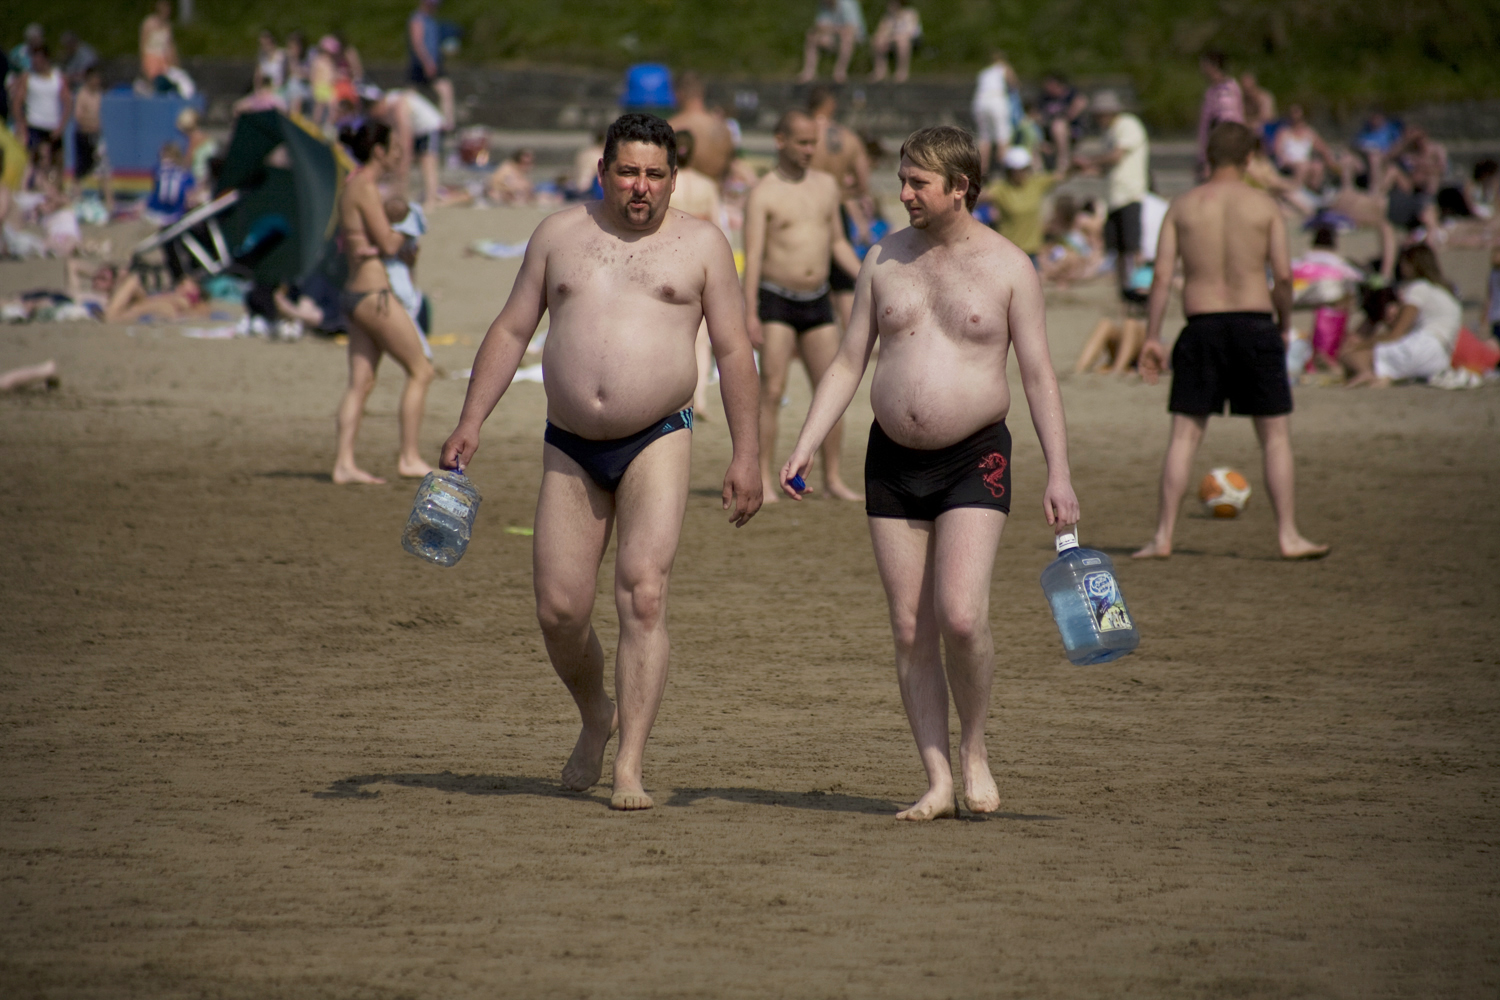 A documentary photograph of two men walking along an irish beach holding empty water jugs